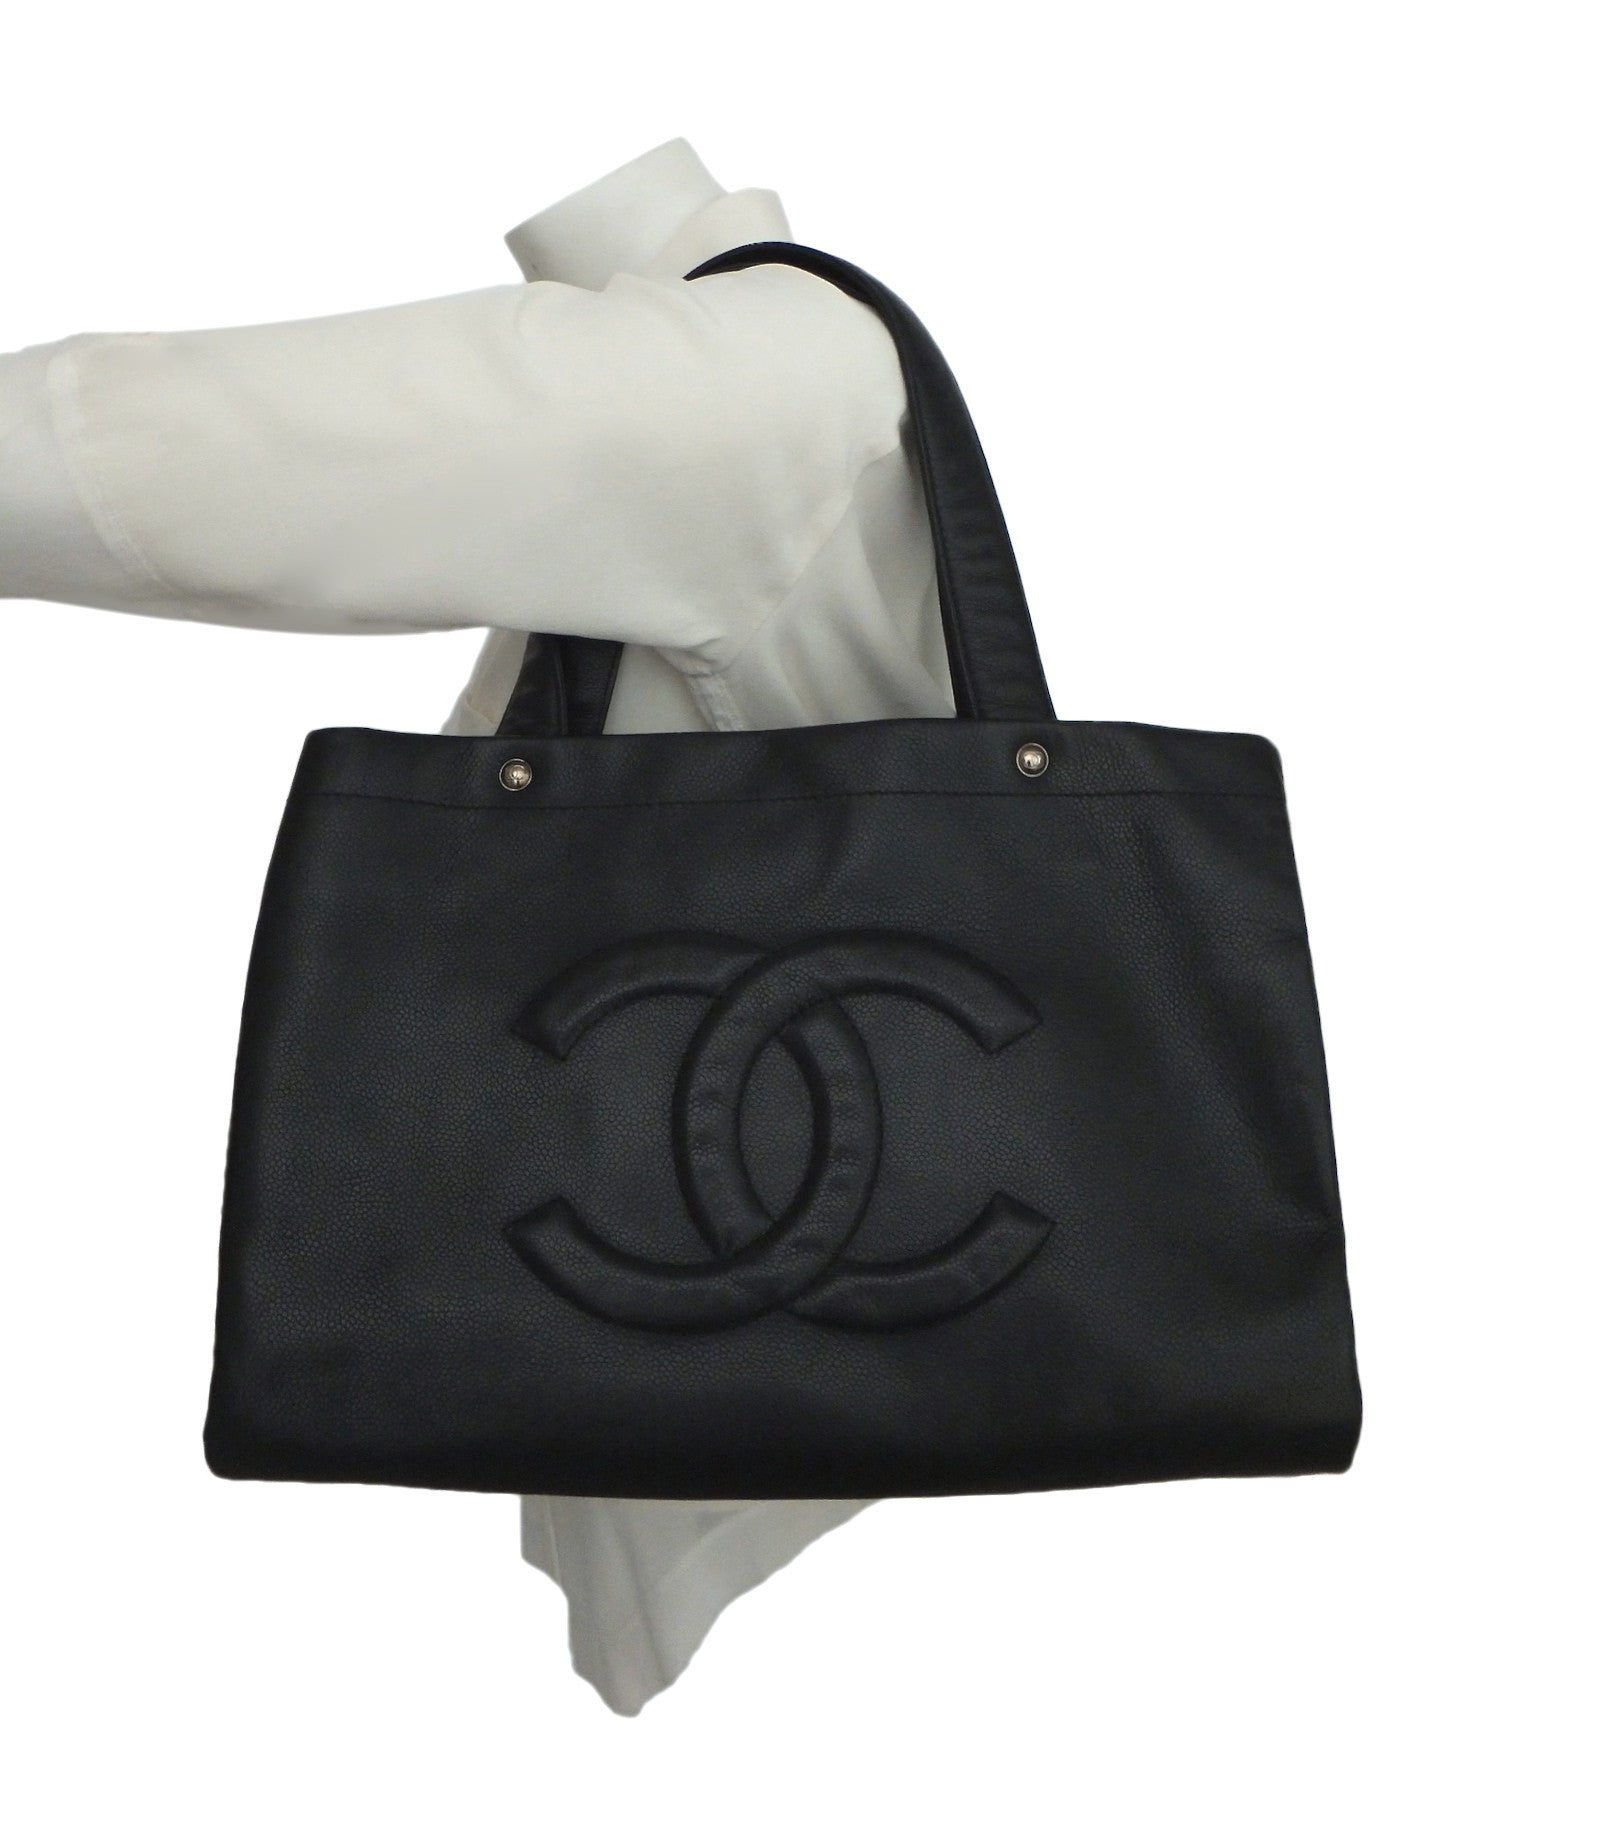 c7c90212713882 Authentic Chanel Caviar Black Jumbo GST Shopper Tote – Classic Coco Authentic  Vintage Luxury